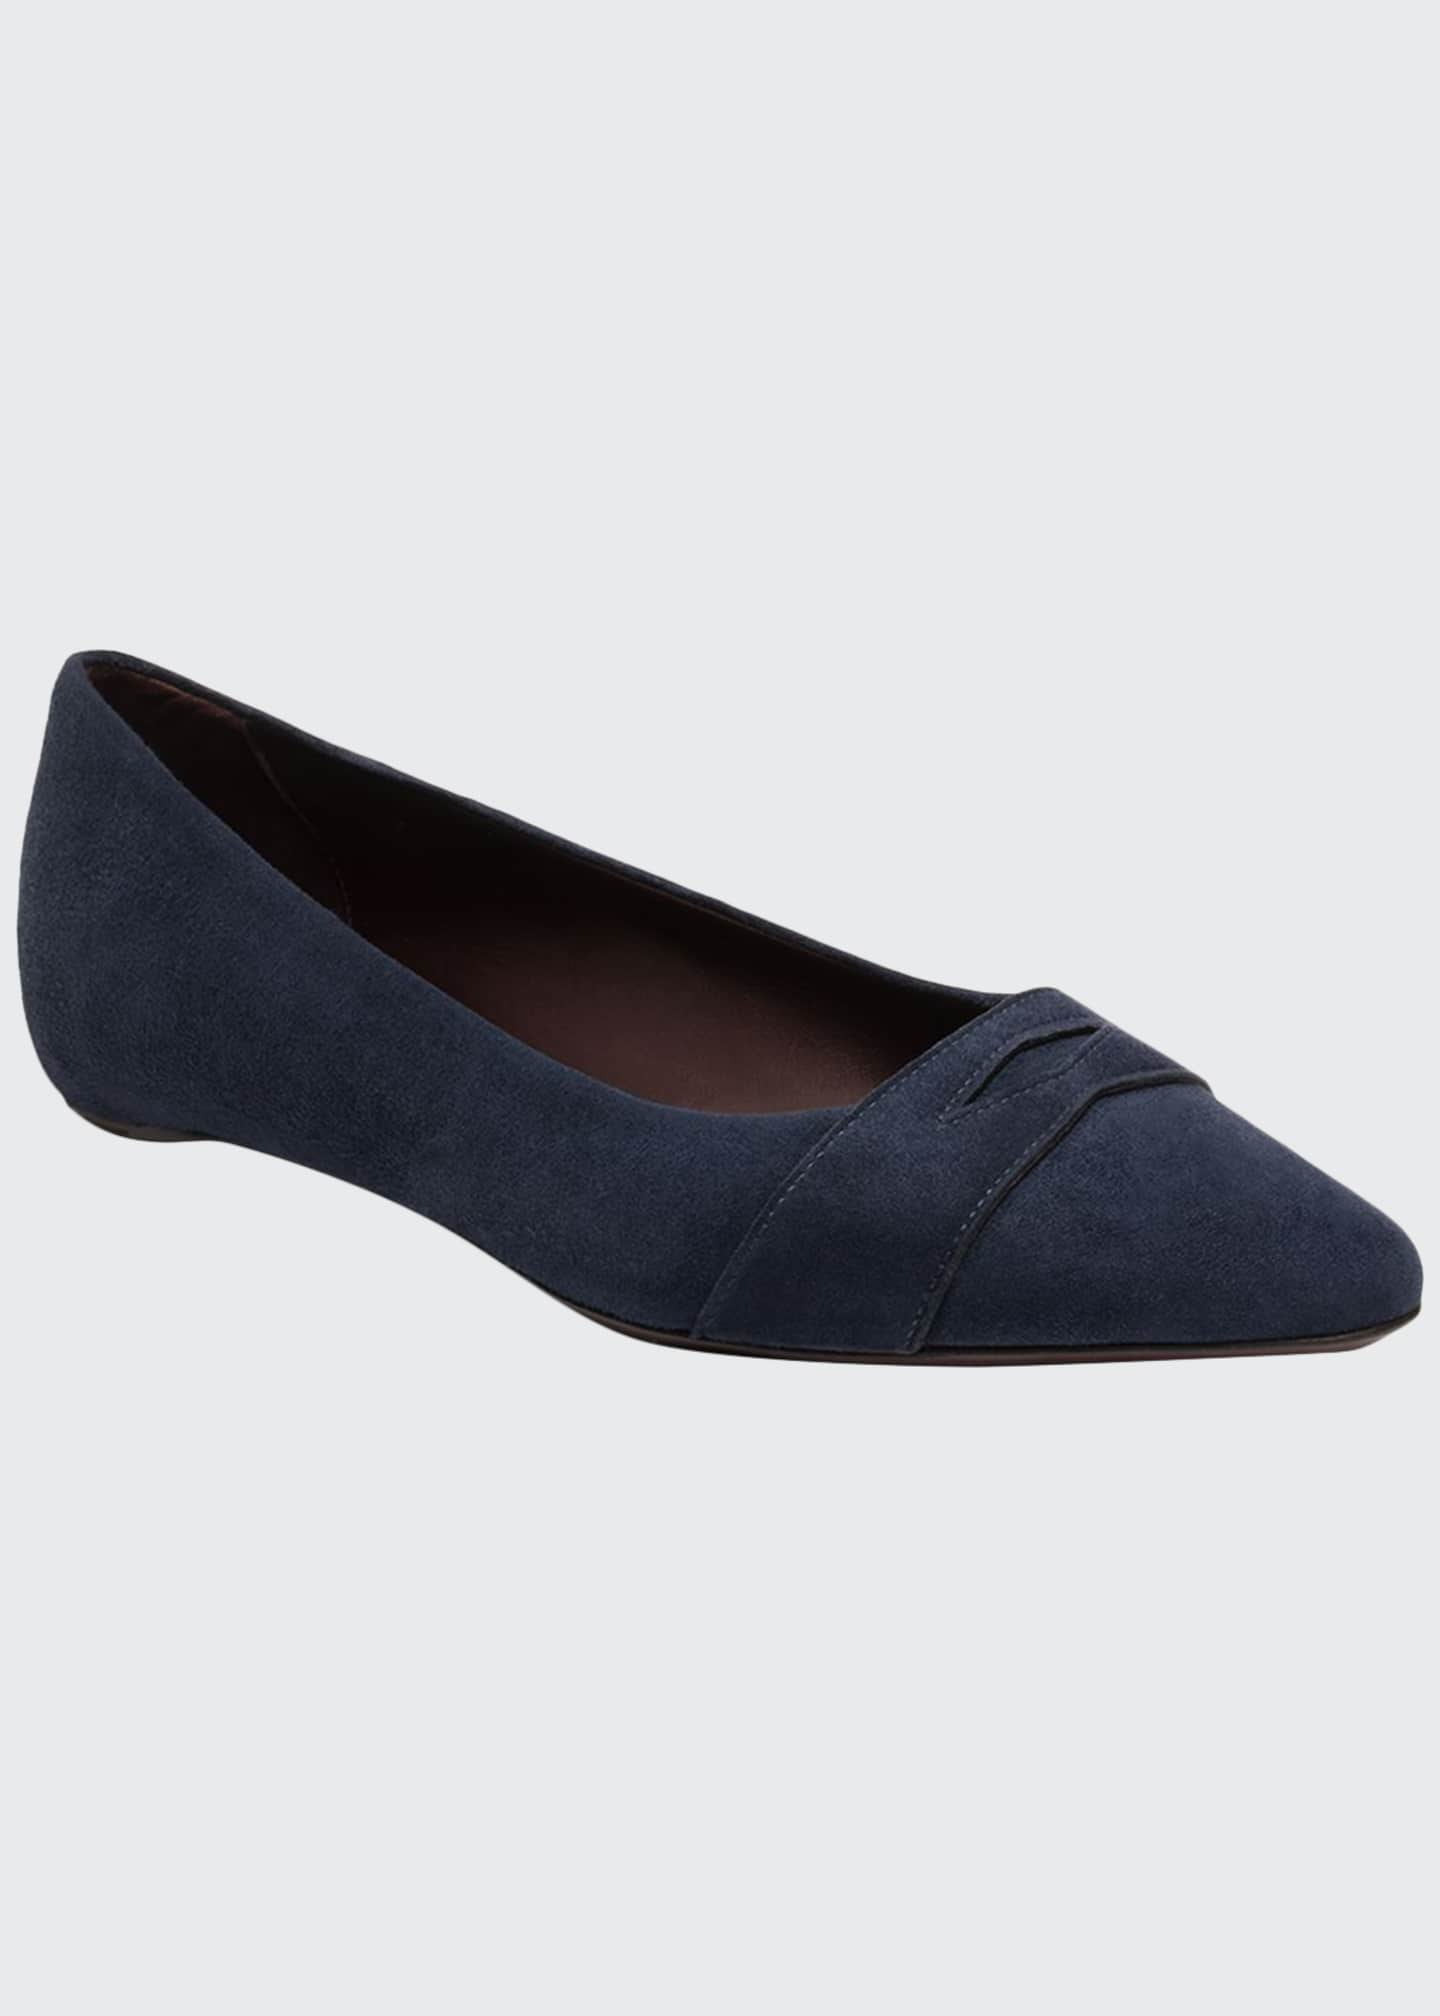 Bougeotte Suede Keeper Ballet Flats, Dark Blue